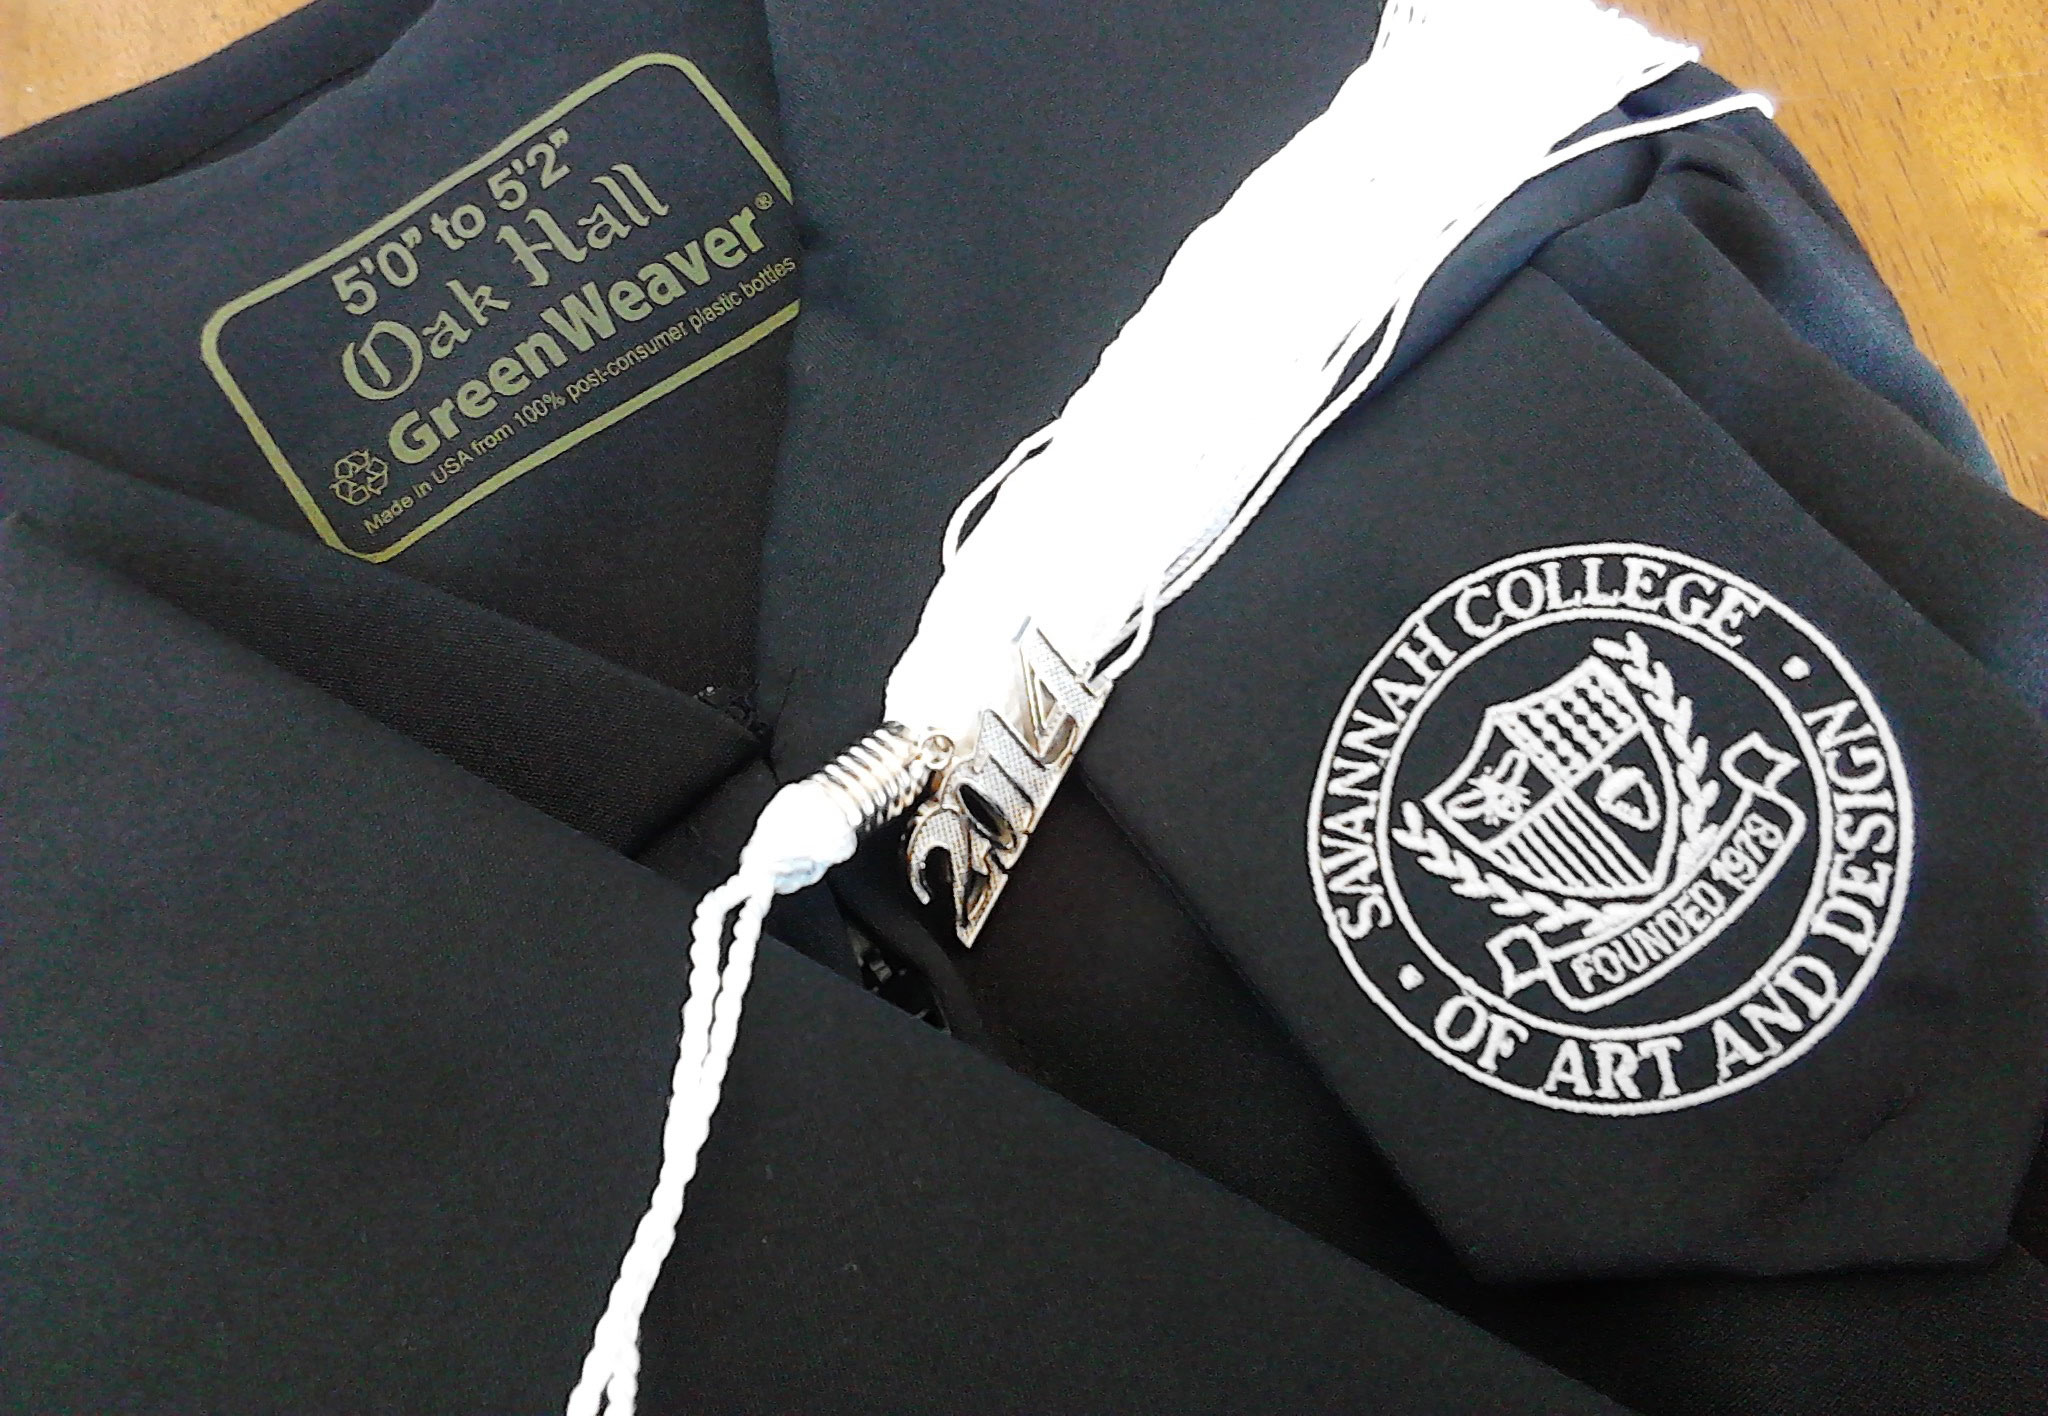 Fall 2014 grads going green for commencement - SCAD District